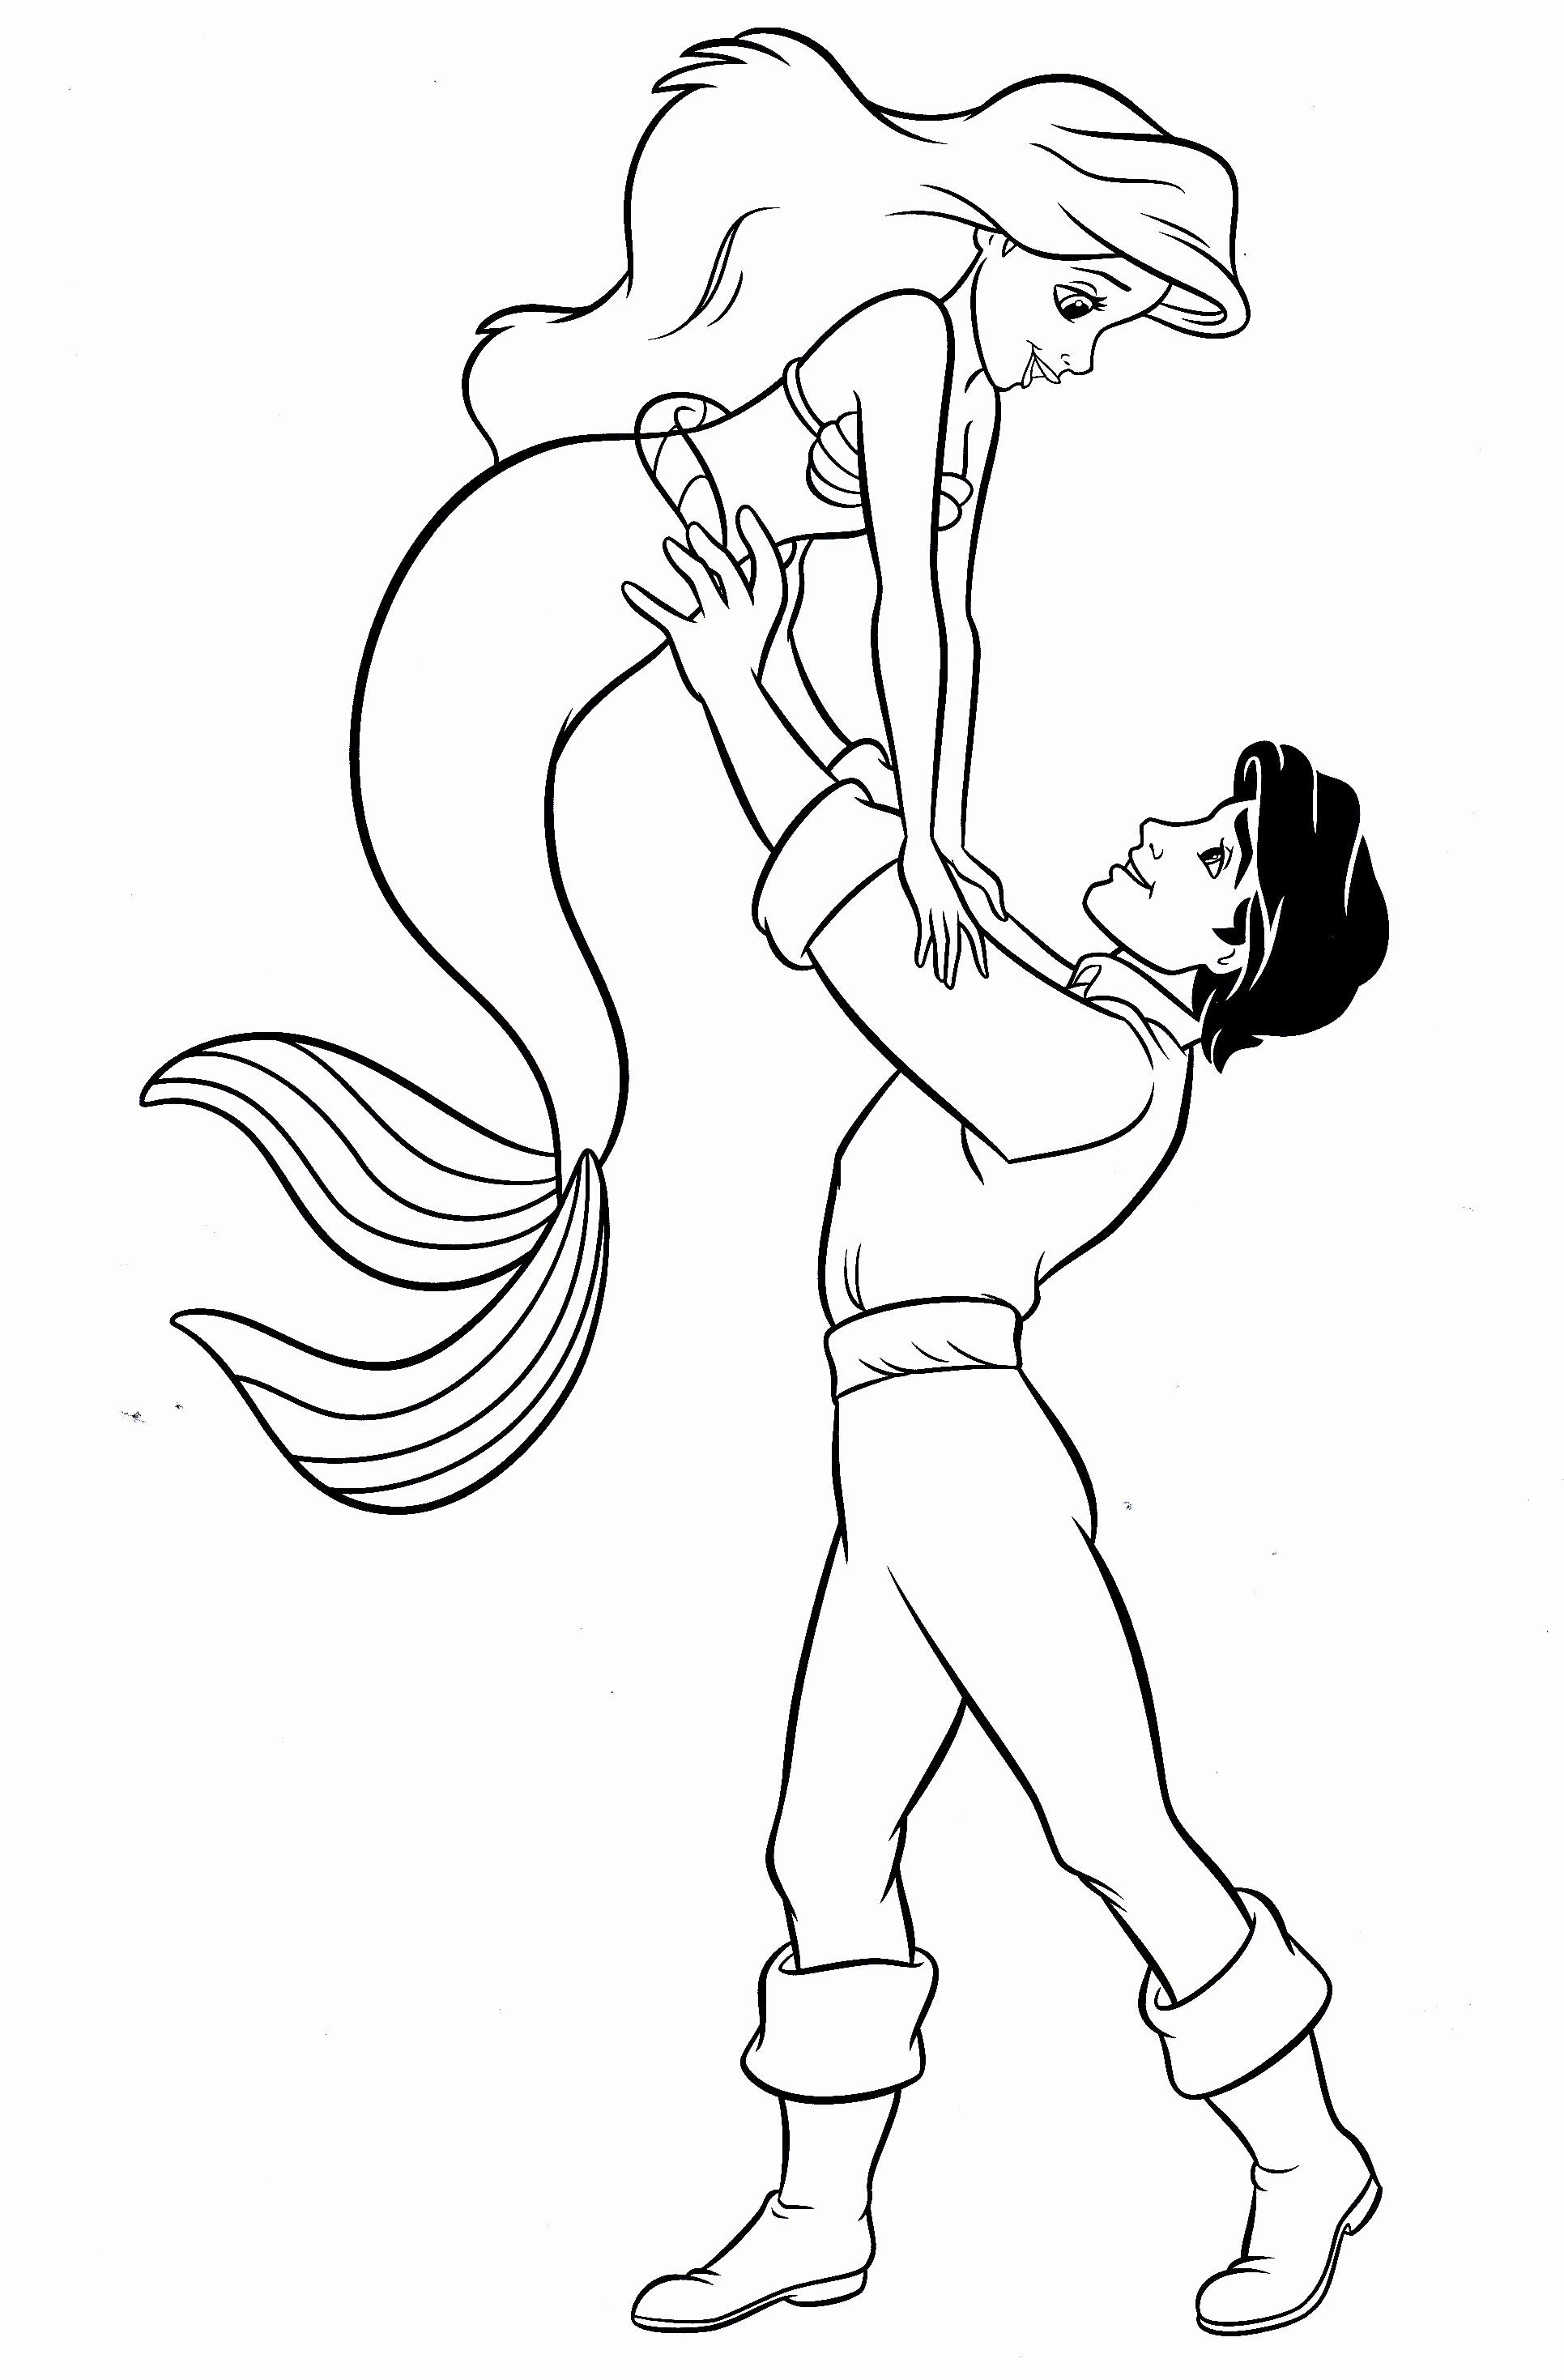 ariel and eric coloring pages eric and ariel wedding day little mermaid coloring page coloring and pages eric ariel